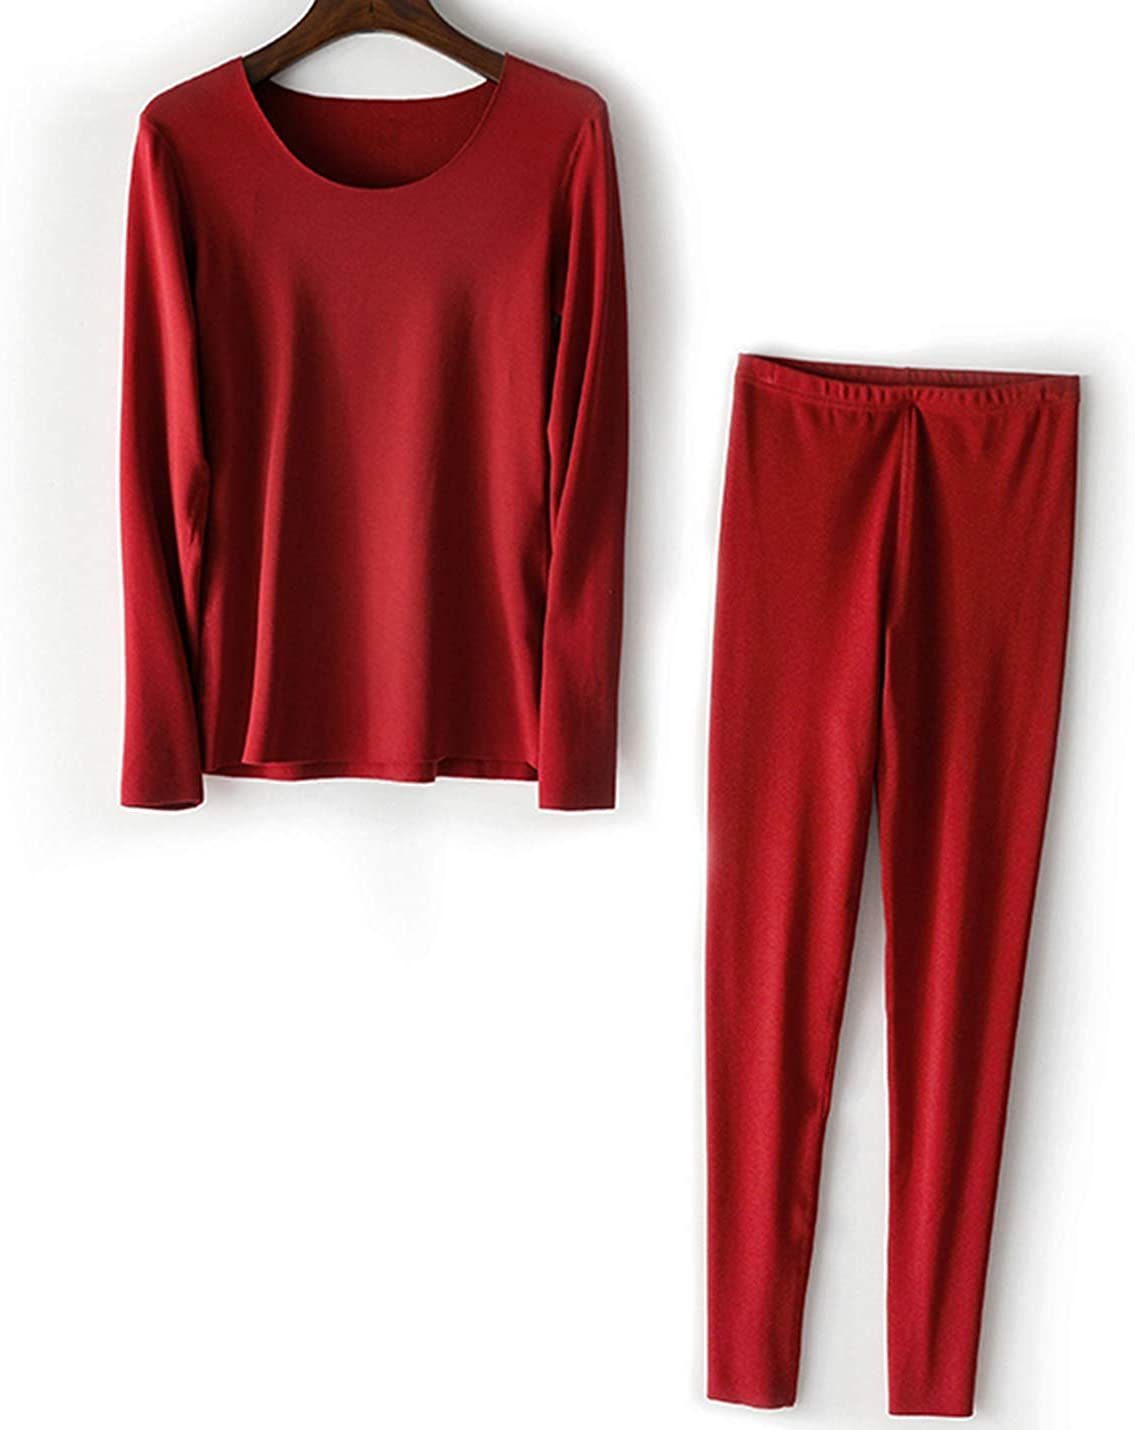 Flygo Women's Ultra-Soft Thermal Underwear Long John Set Baselayer Tops and Bottoms With Fleece Lined